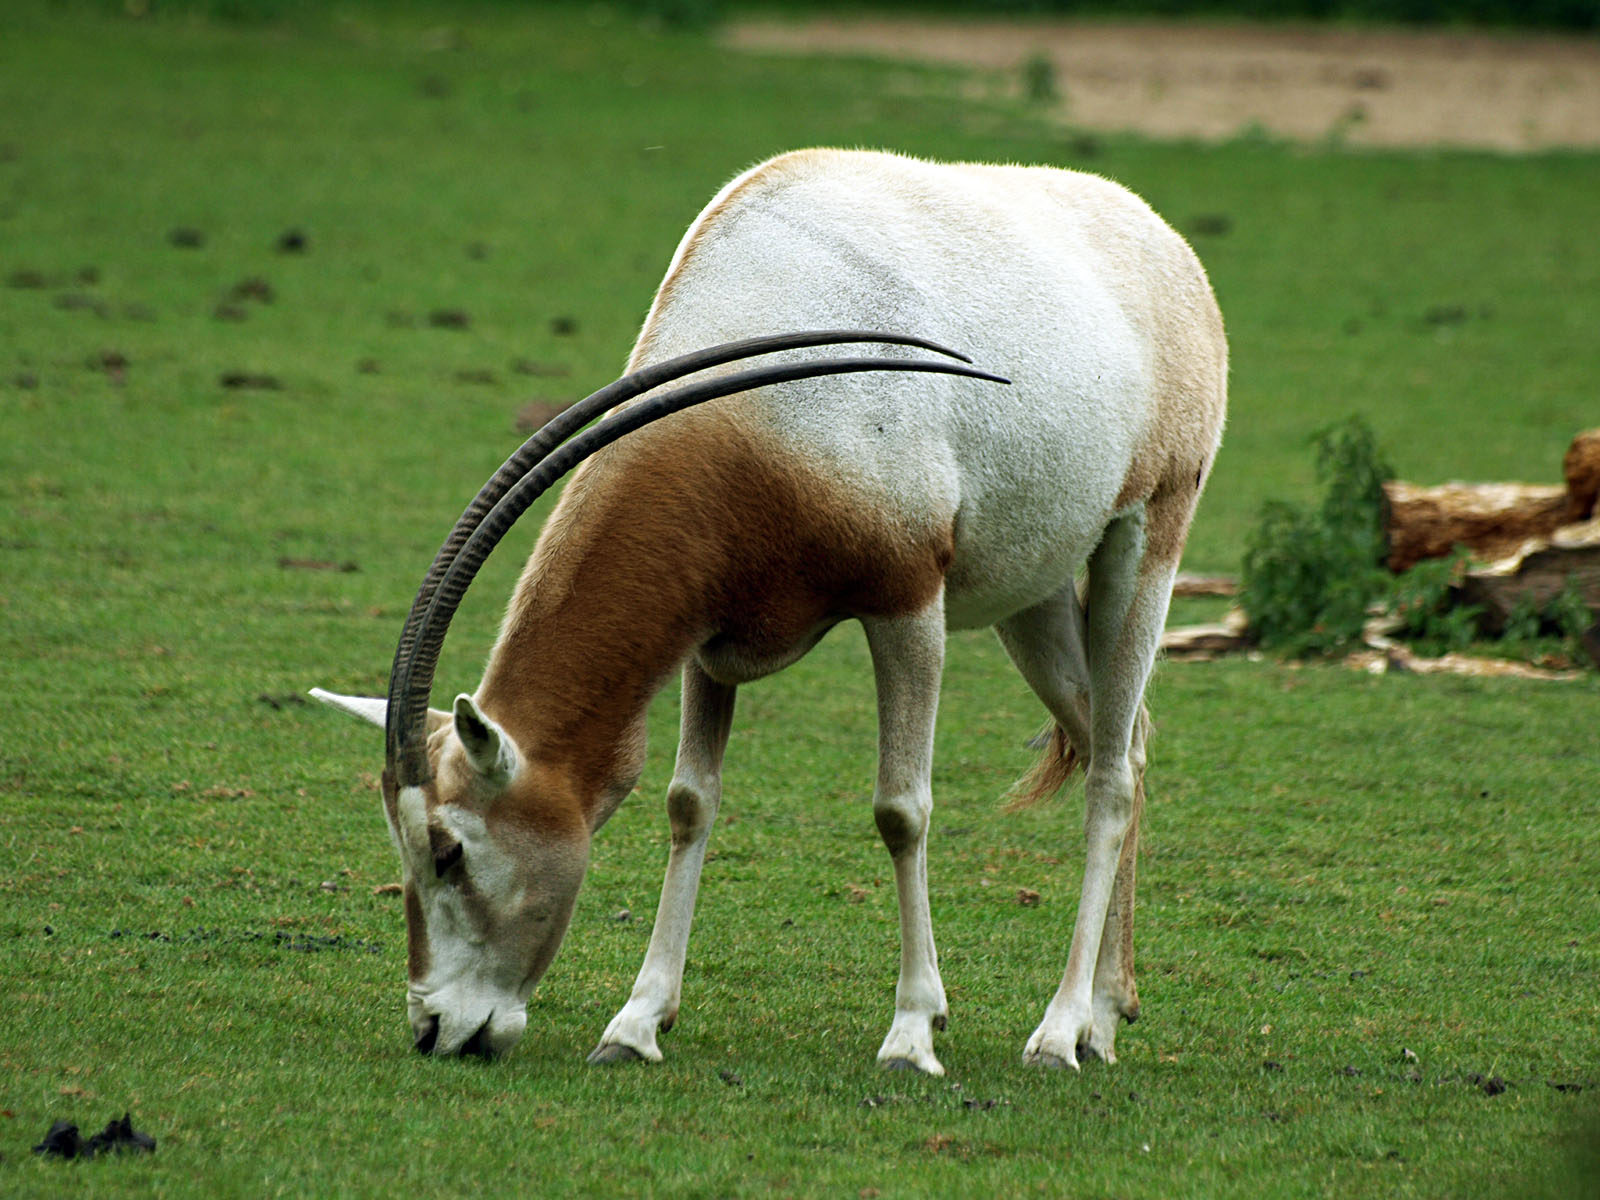 https://www.zoochat.com/community/media/scimitar-horned-oryx.184114/full?d=1334918443